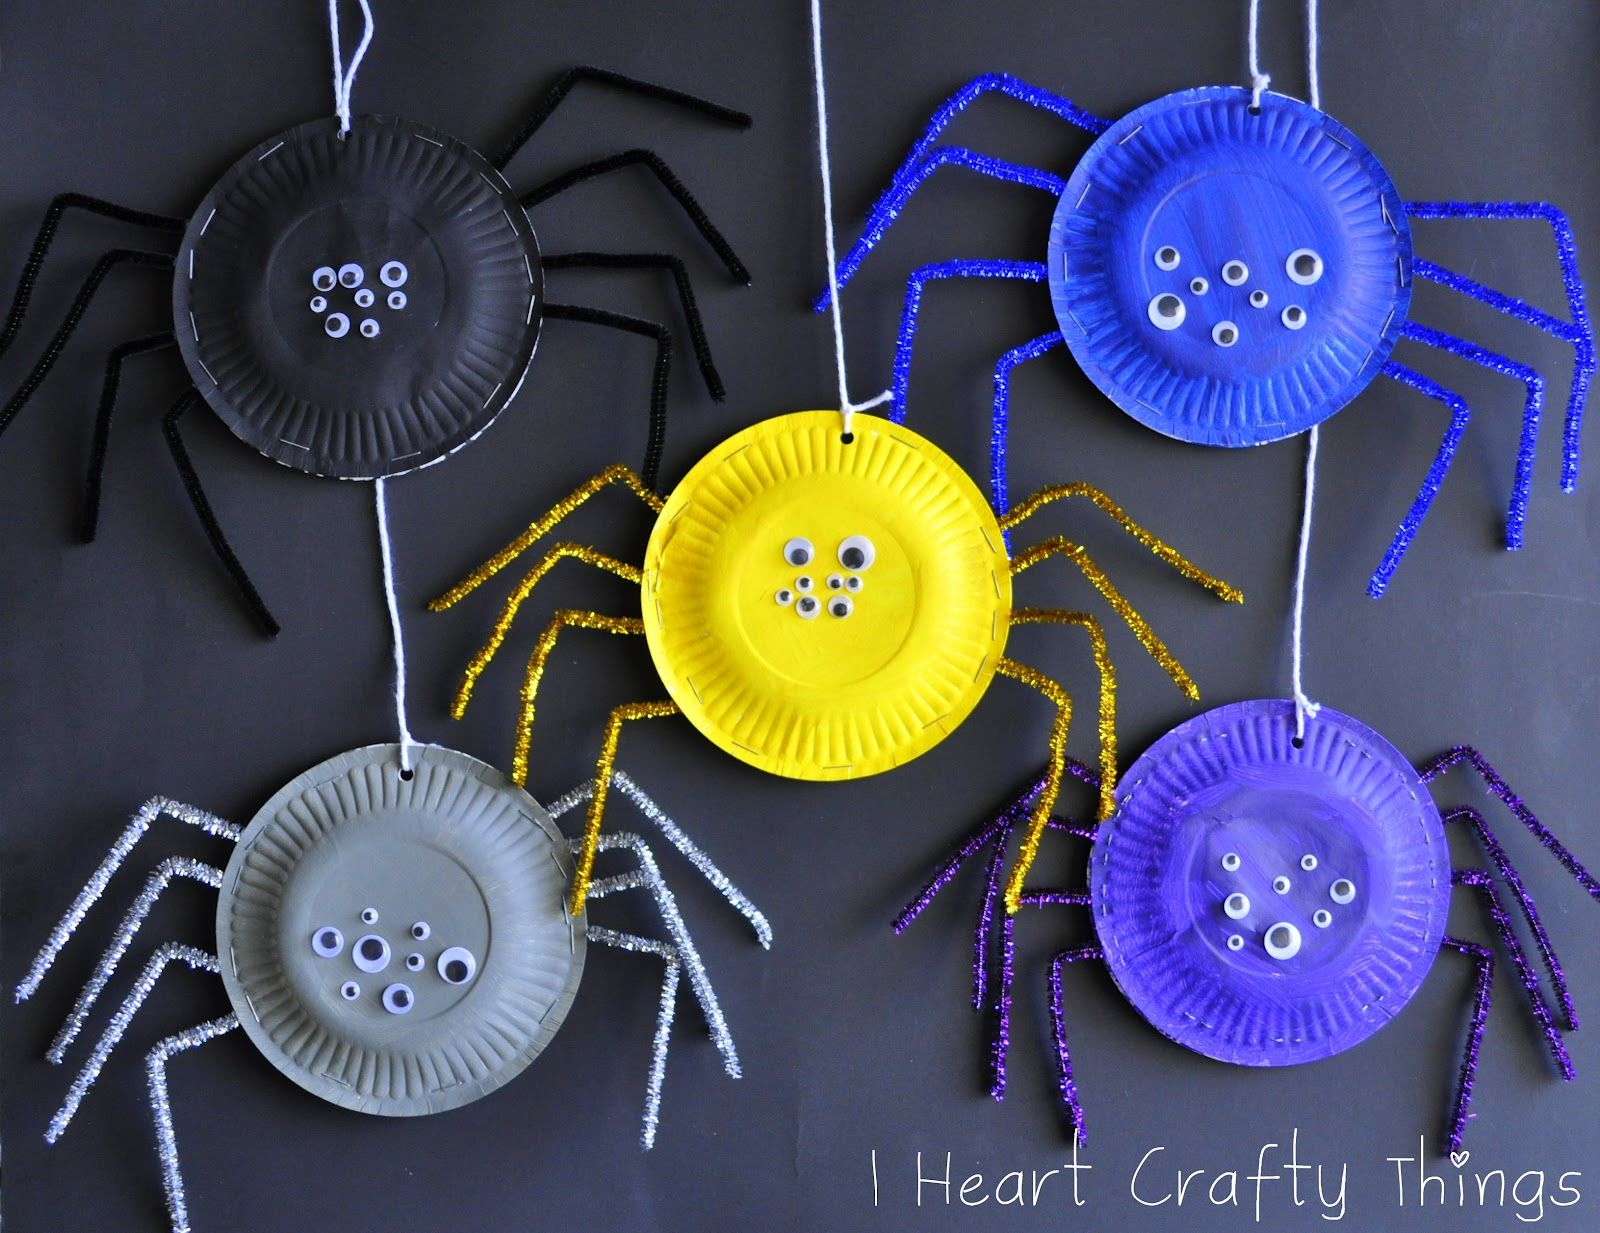 Paper plate spiders spider crafty and craft i heart crafty things paper plate spiders jeuxipadfo Image collections